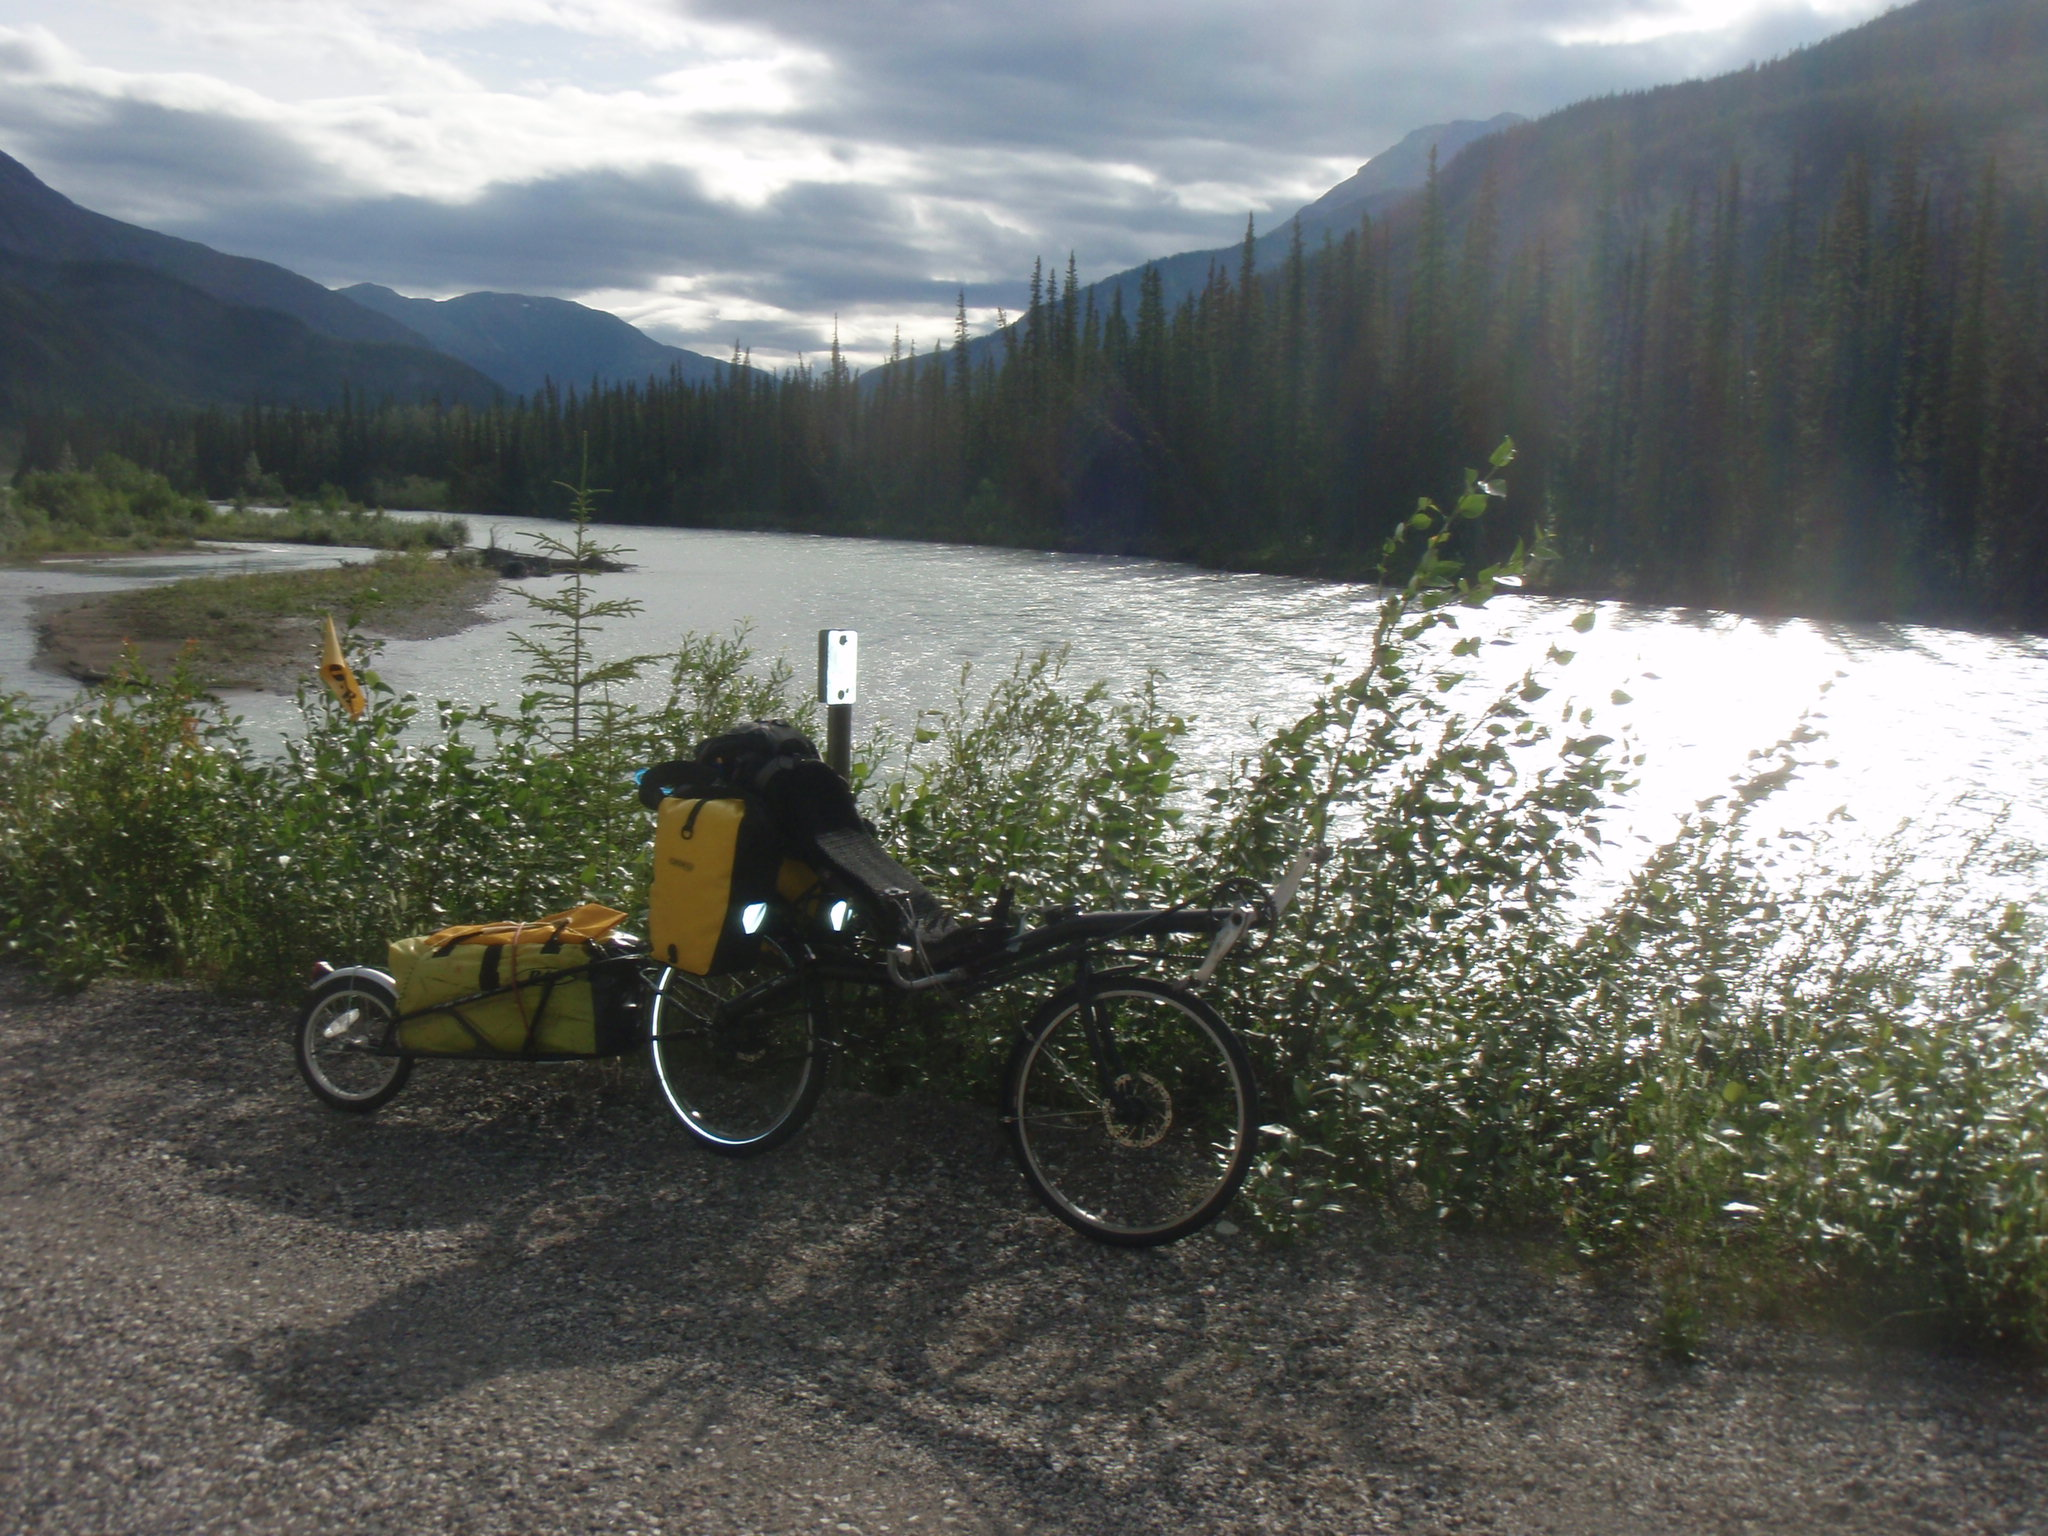 Ride along the Toad River in the Northern Rockies